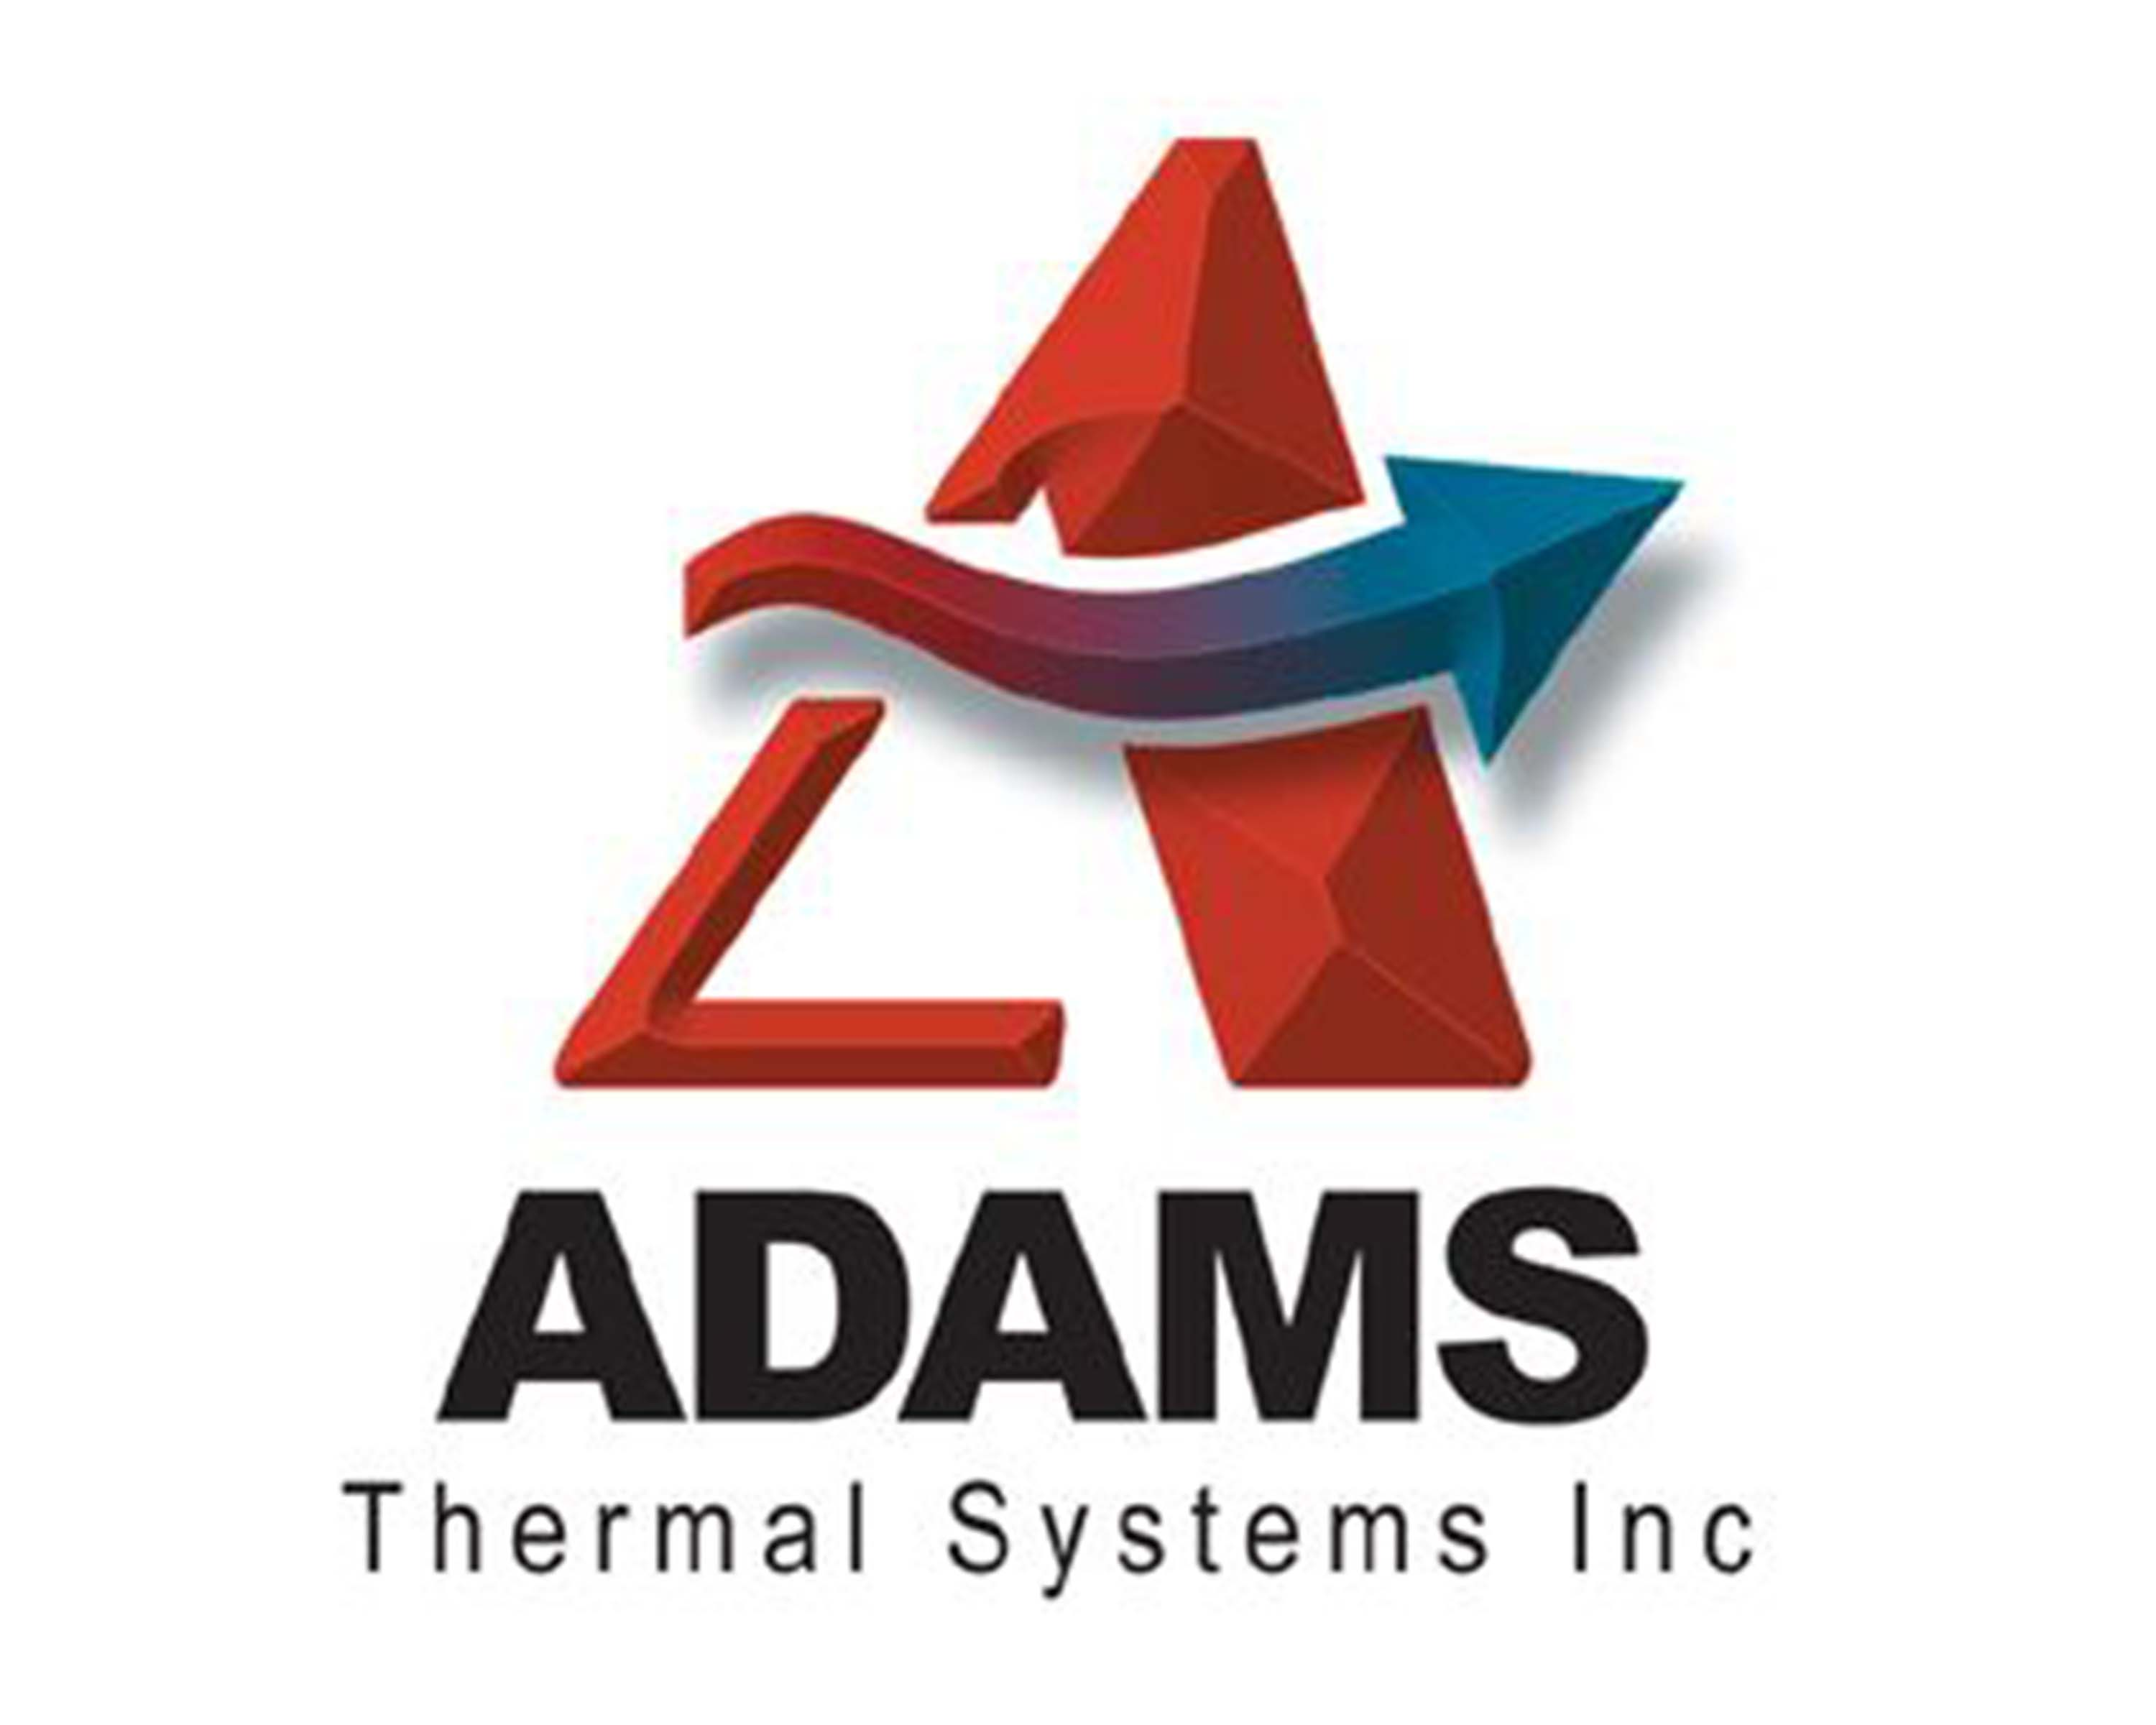 Adams Thermal